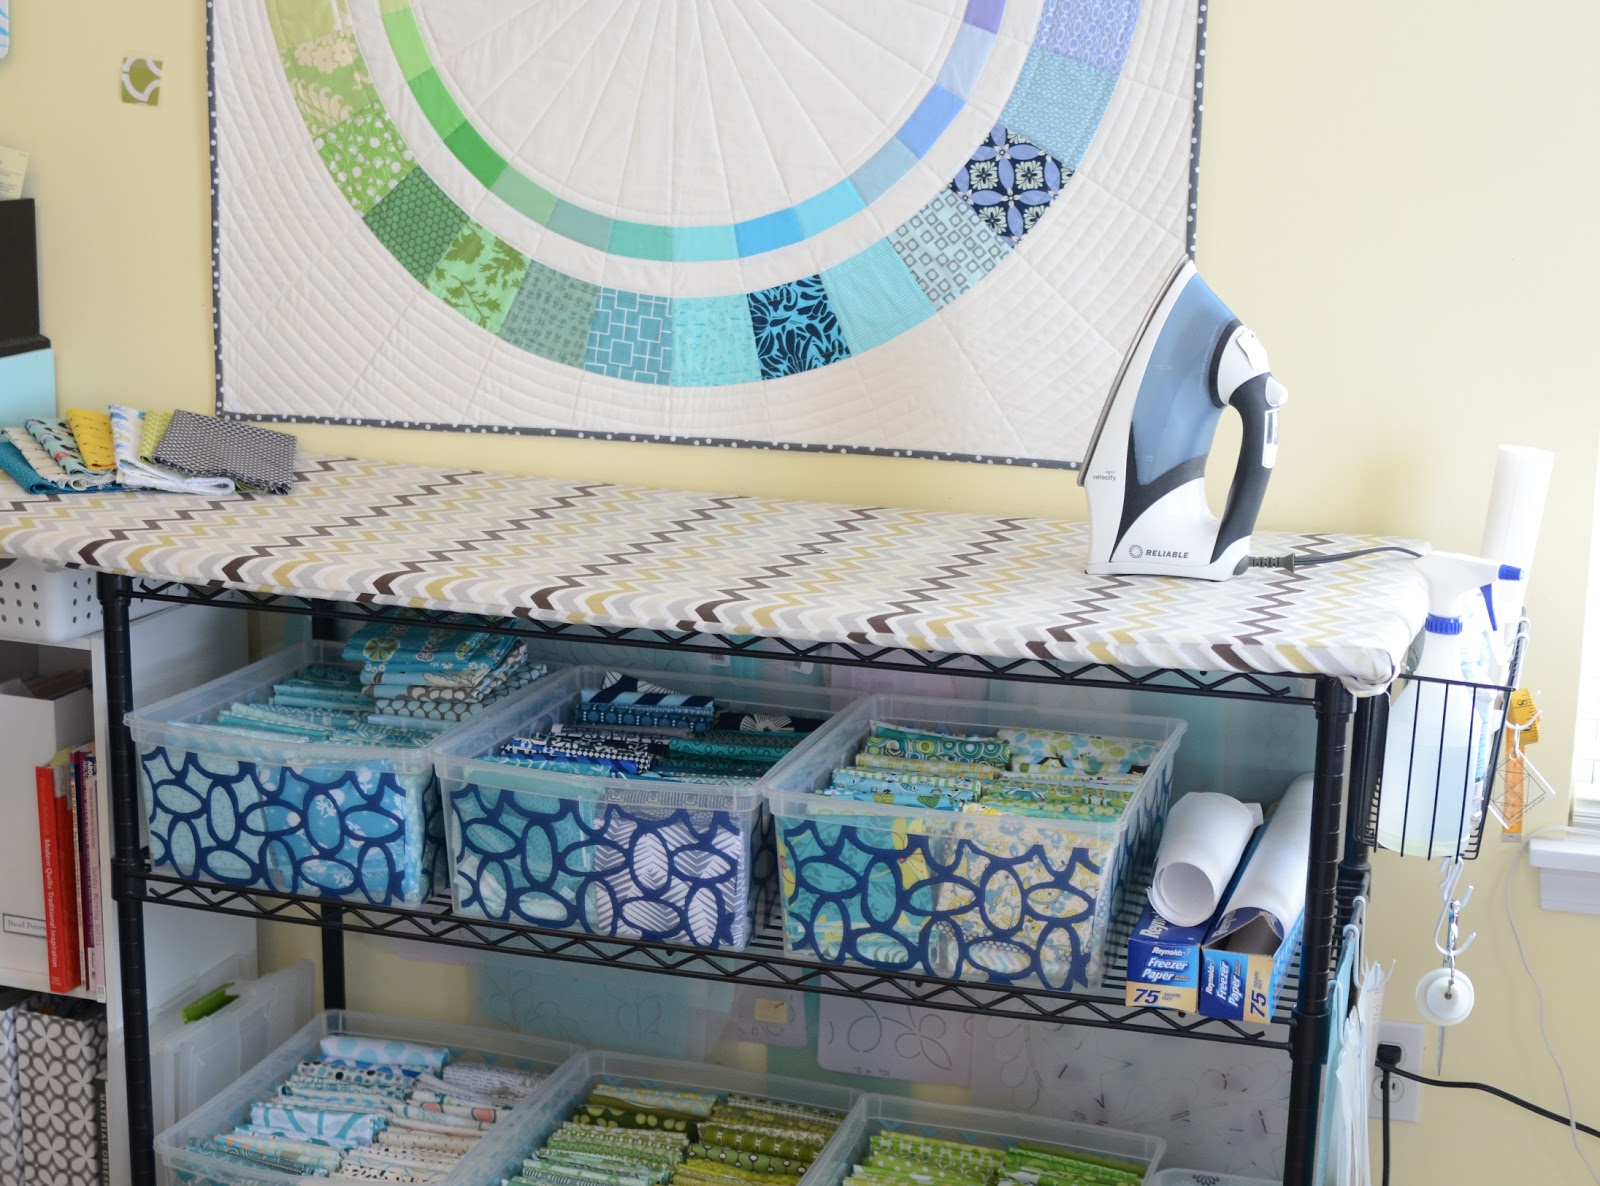 Sewing Room Designs: A Bright Corner: Five Friday Favorites: Sewing Room